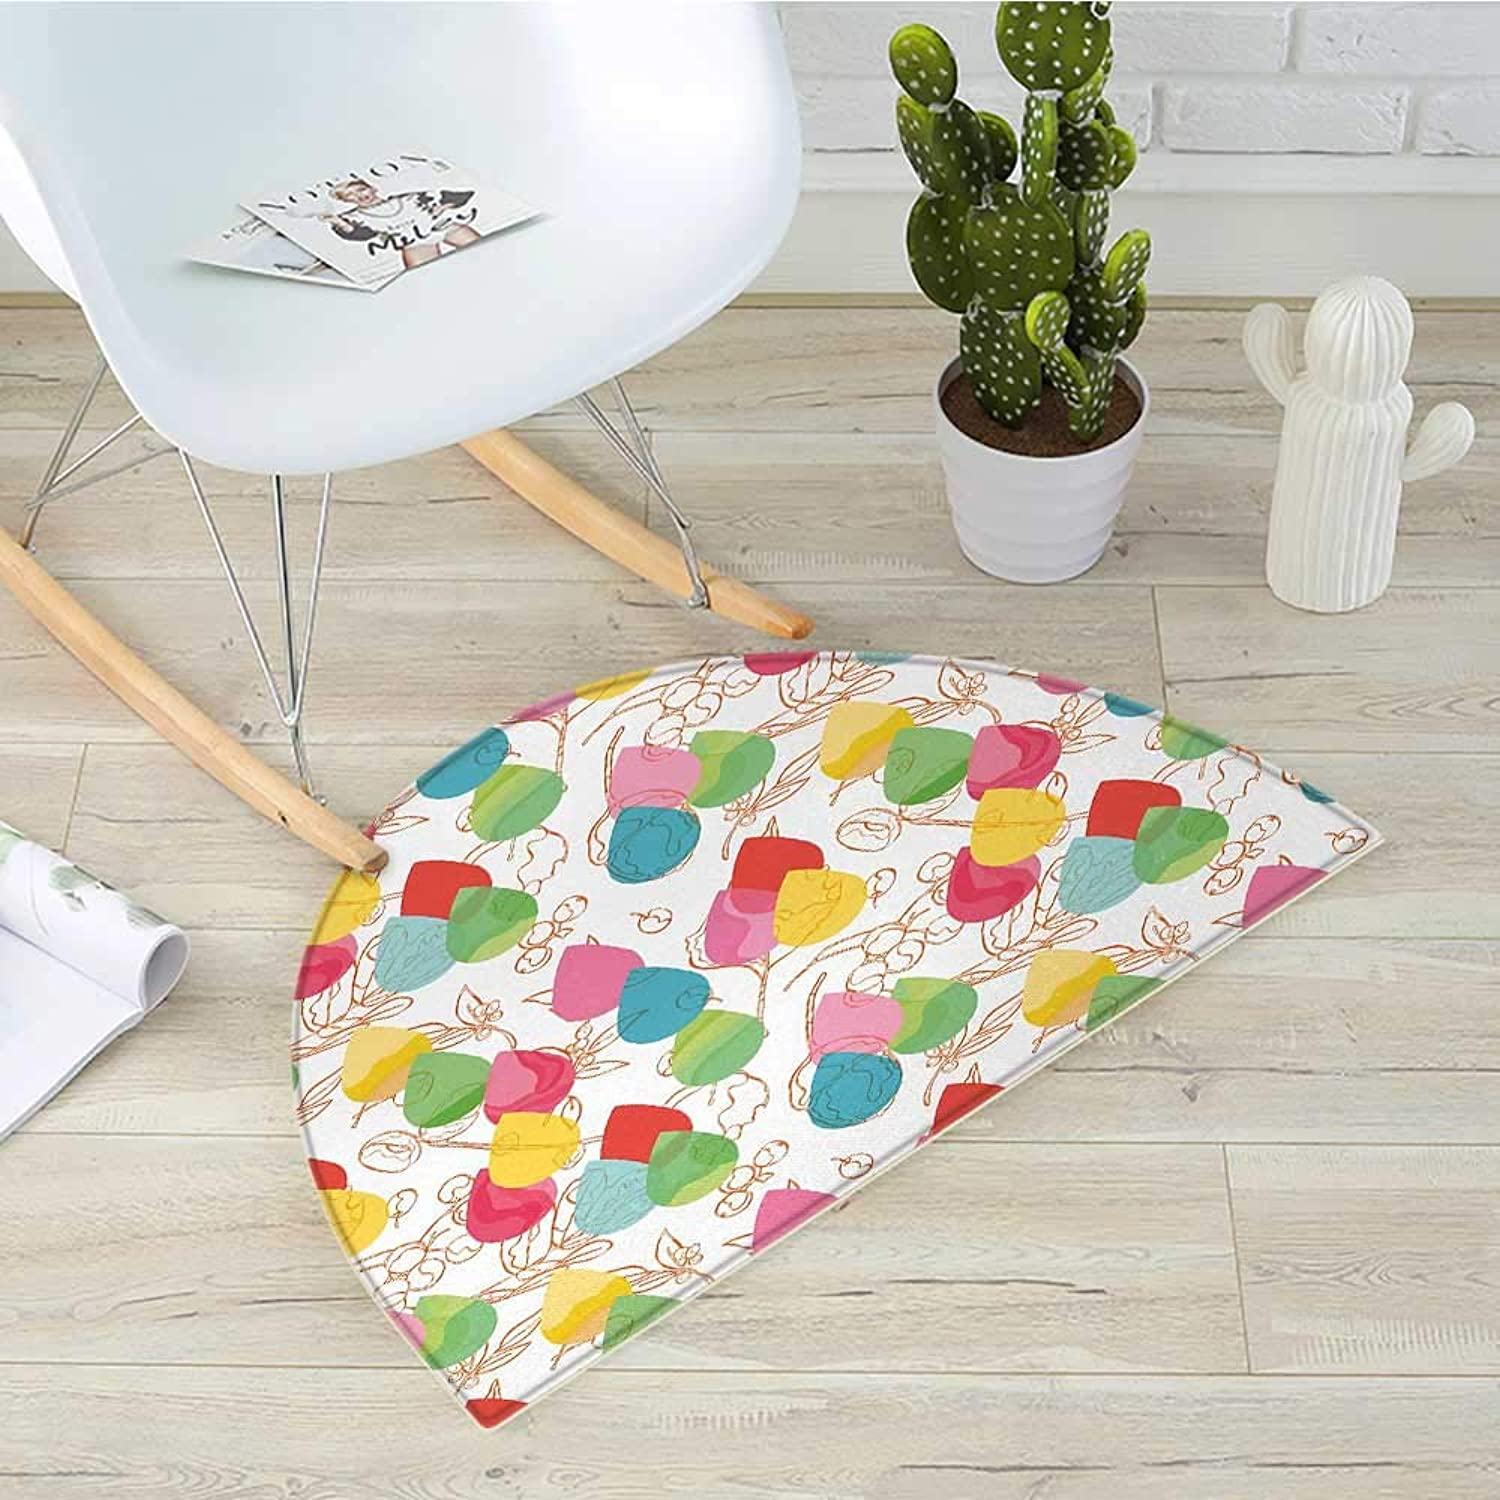 Abstract Semicircle Doormat color Droplets with Cherry Branches Leaves Curved Lines Autumn Background Design Halfmoon doormats H 31.5  xD 47.2  Multicolor